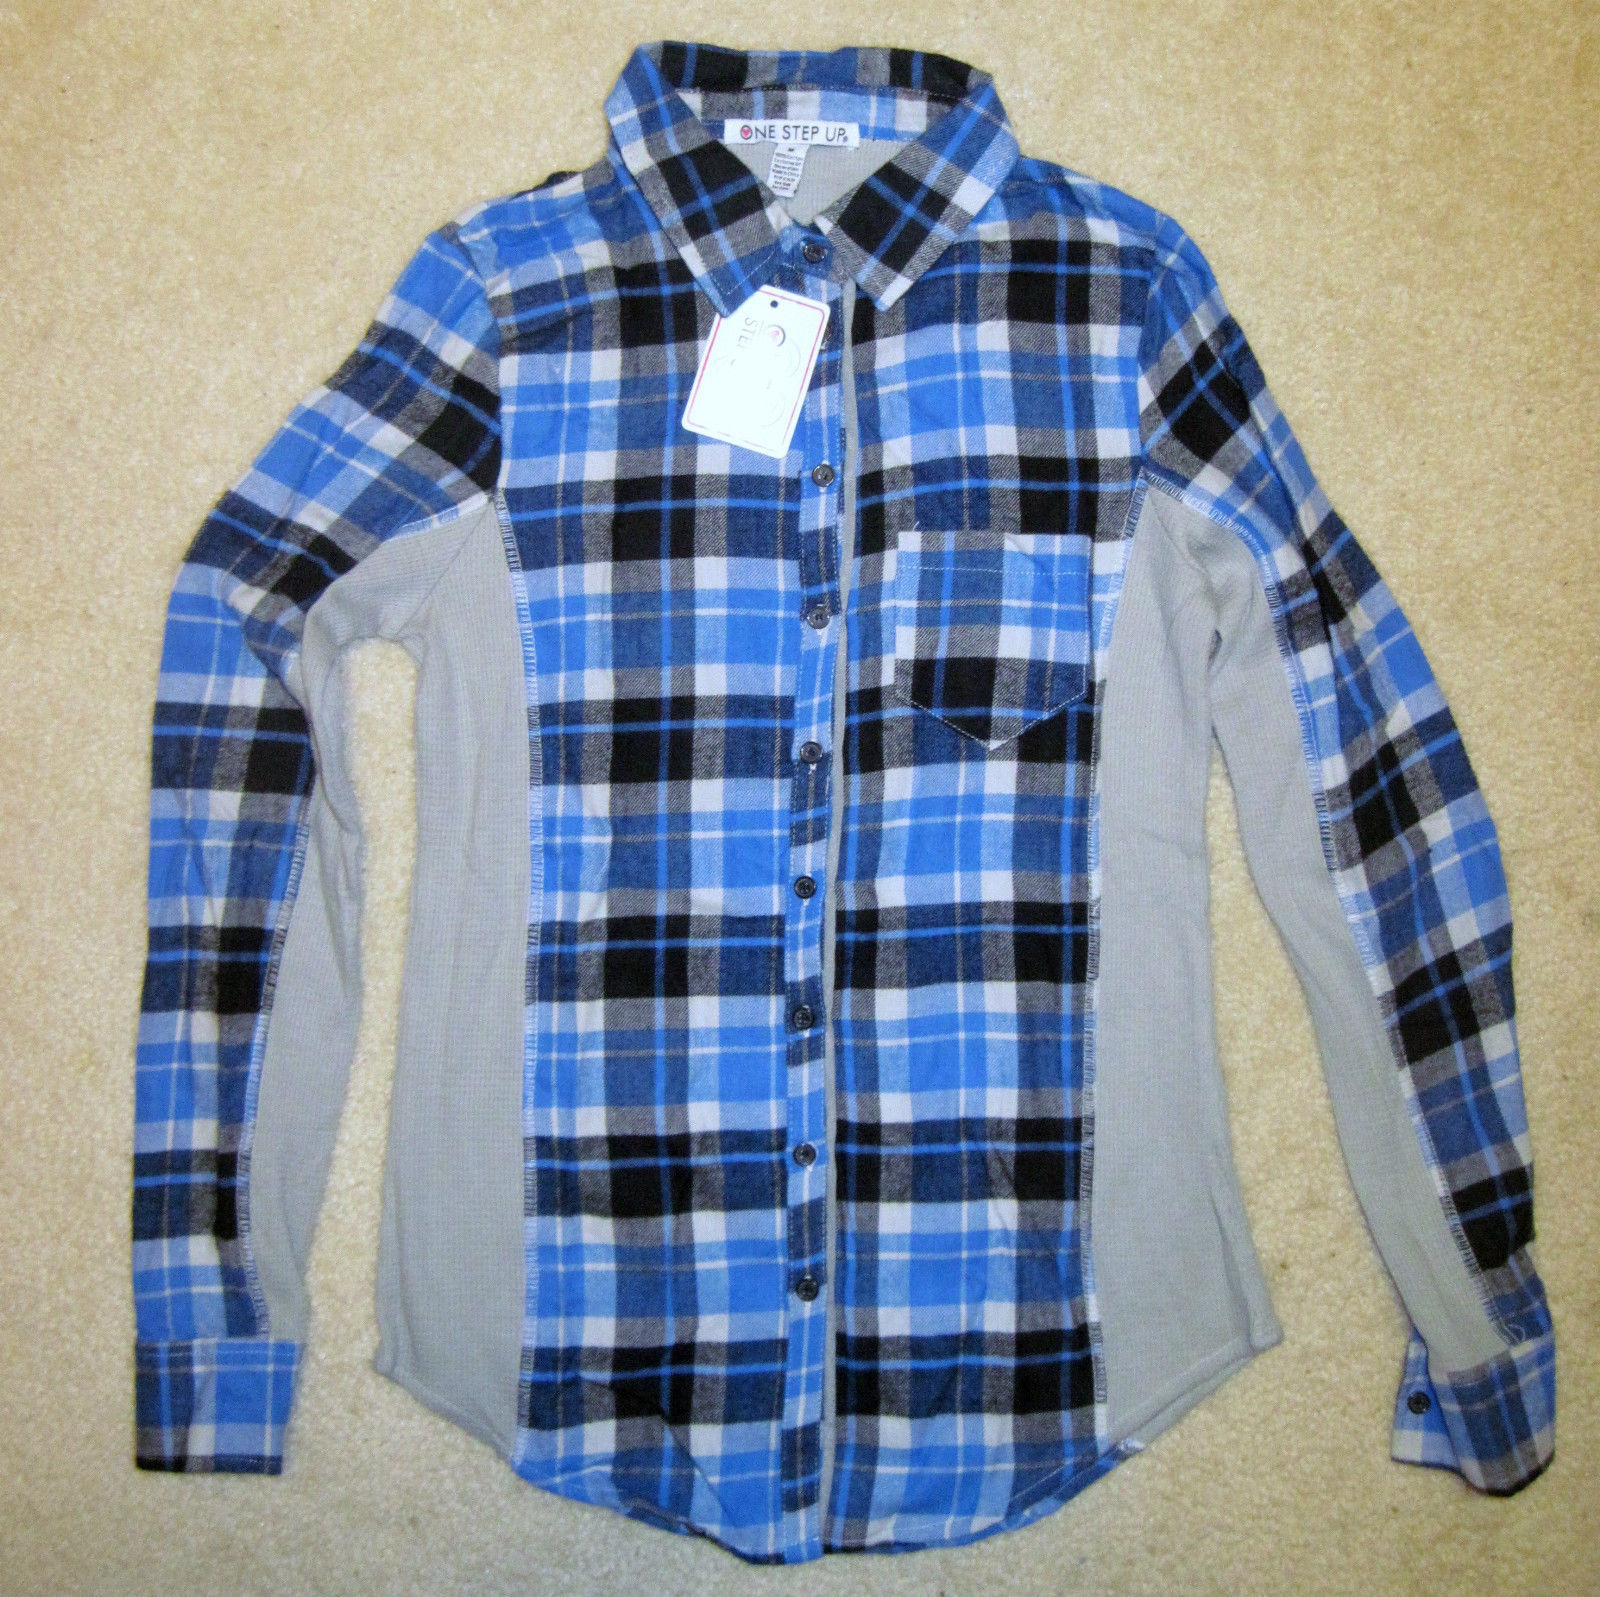 NWT ONE STEP UP Flannel Shirt Long Sleeve Plaid Red or Blue Junior Sizes image 2